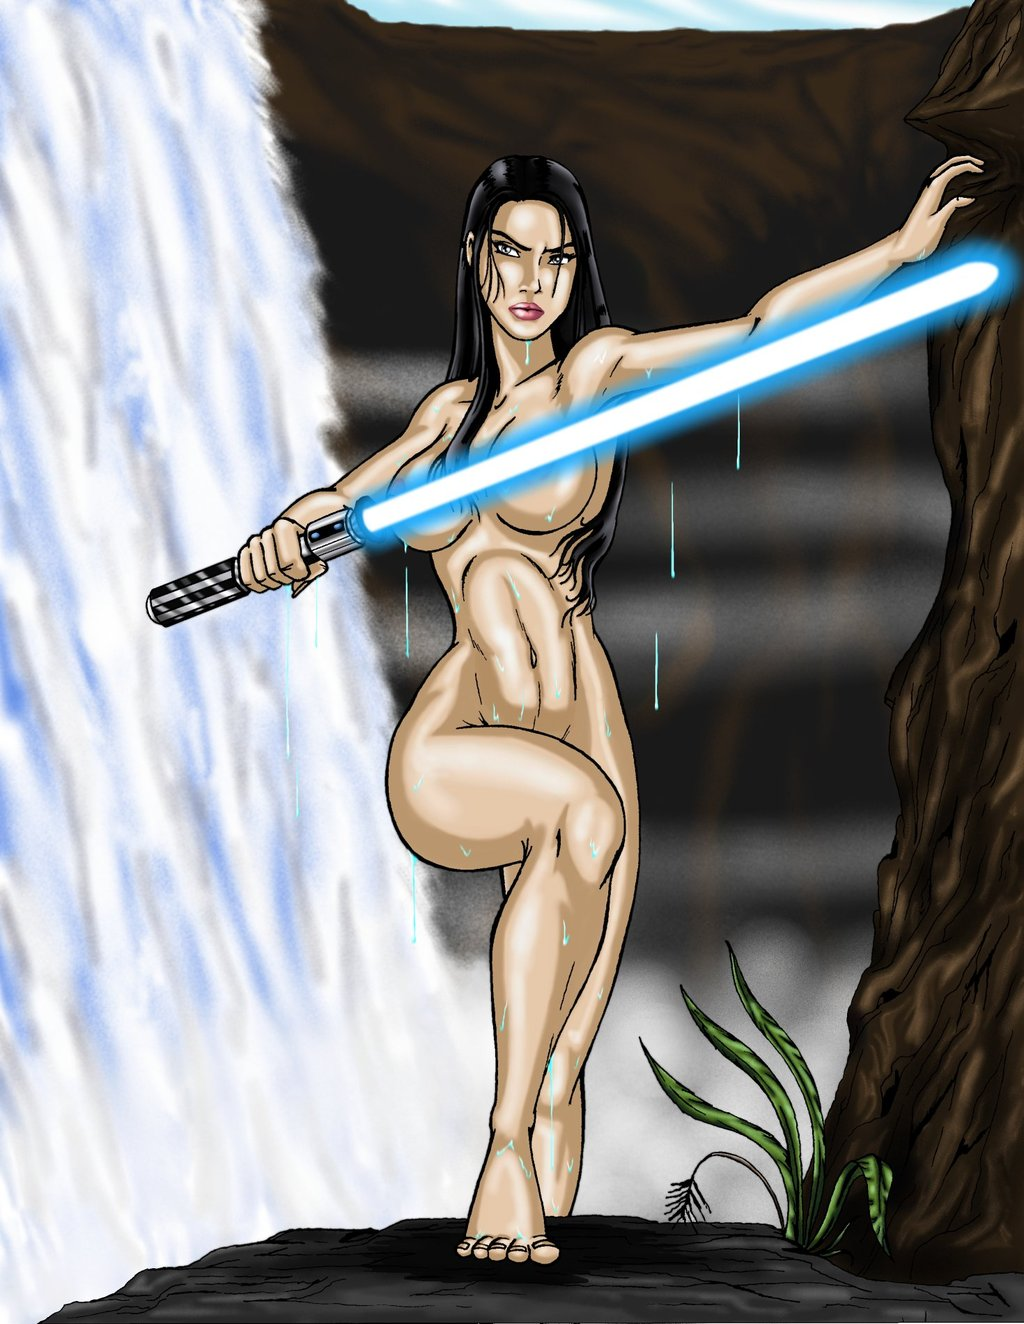 Kotor nudity porn video